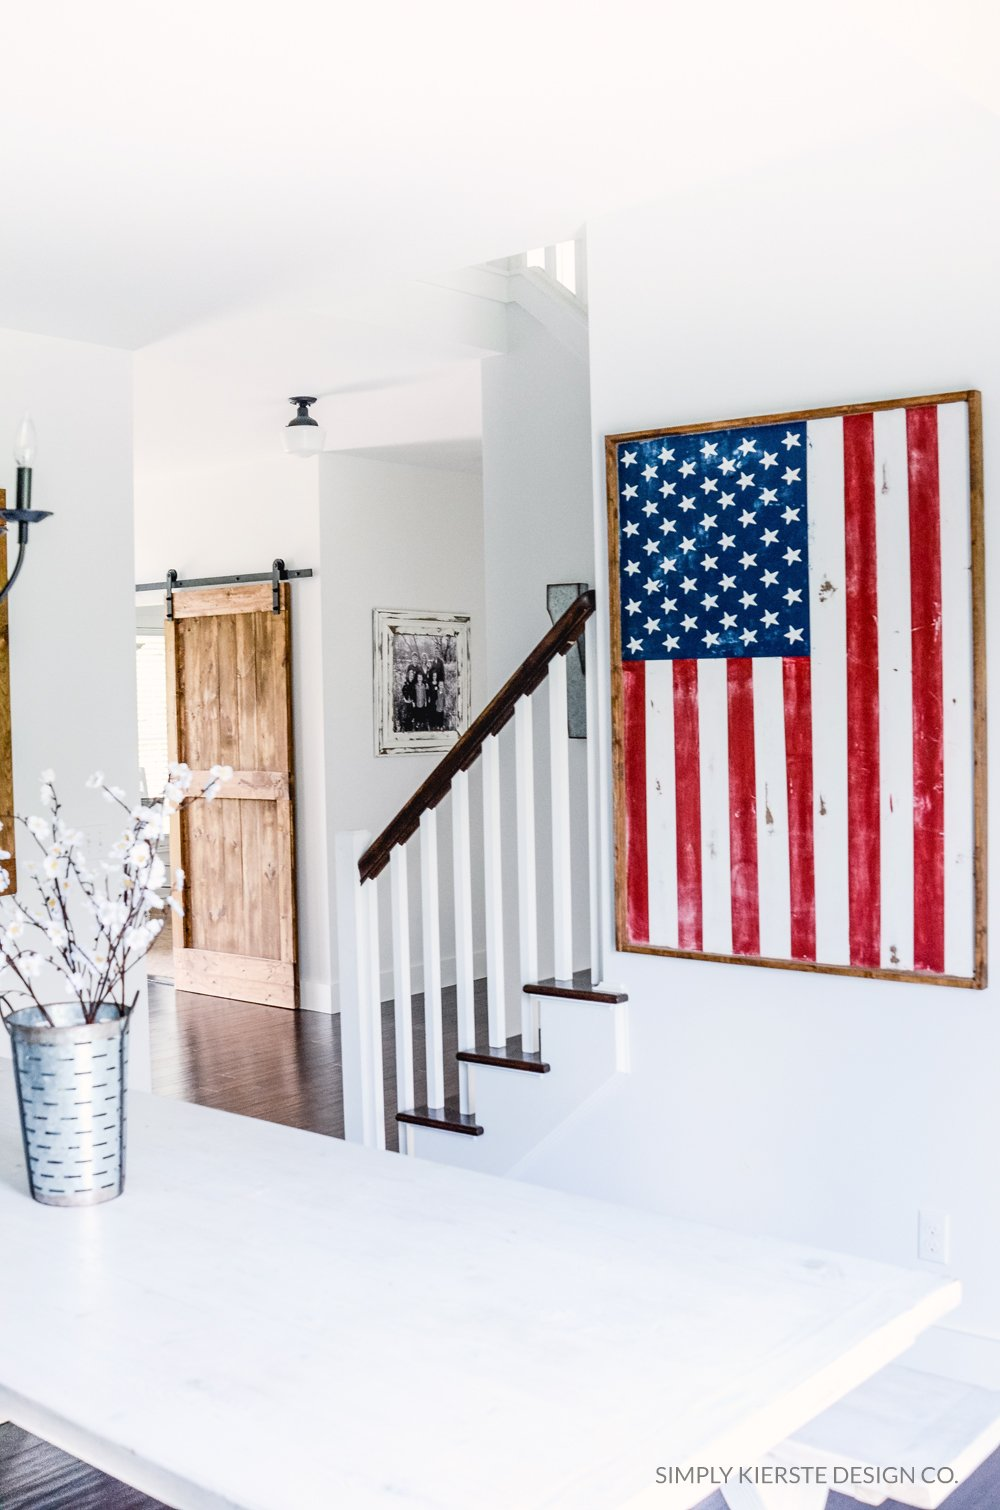 DIY Wood Framed Flag - Simply Kierste Design Co.